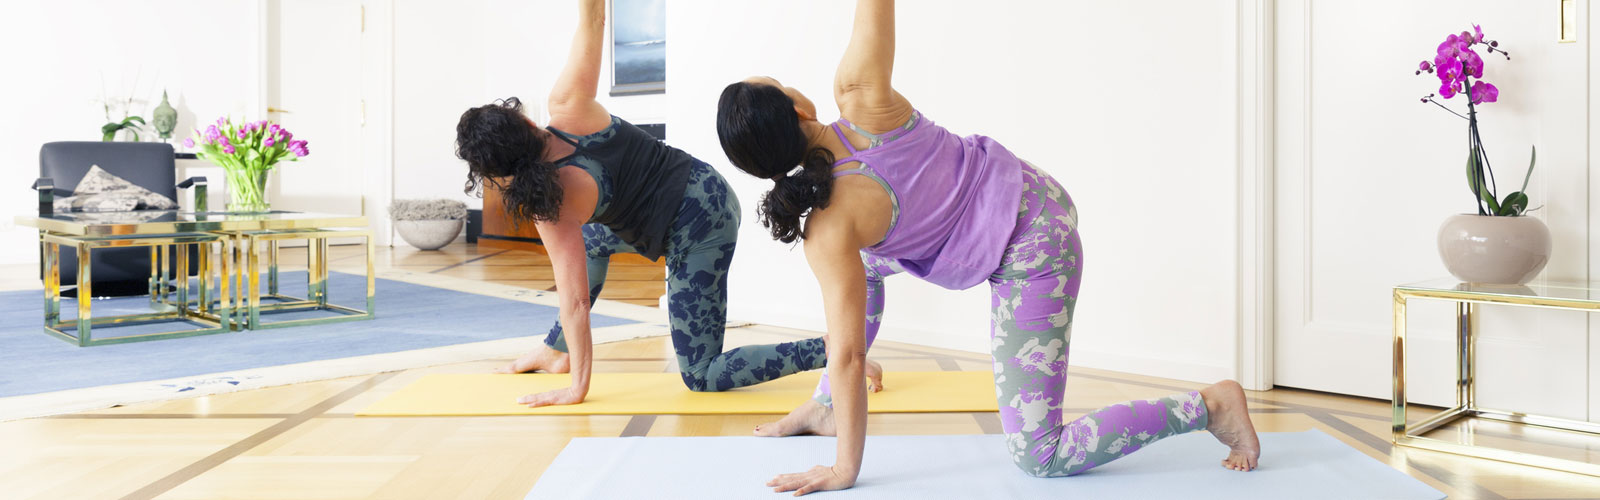 yoga personal training 001